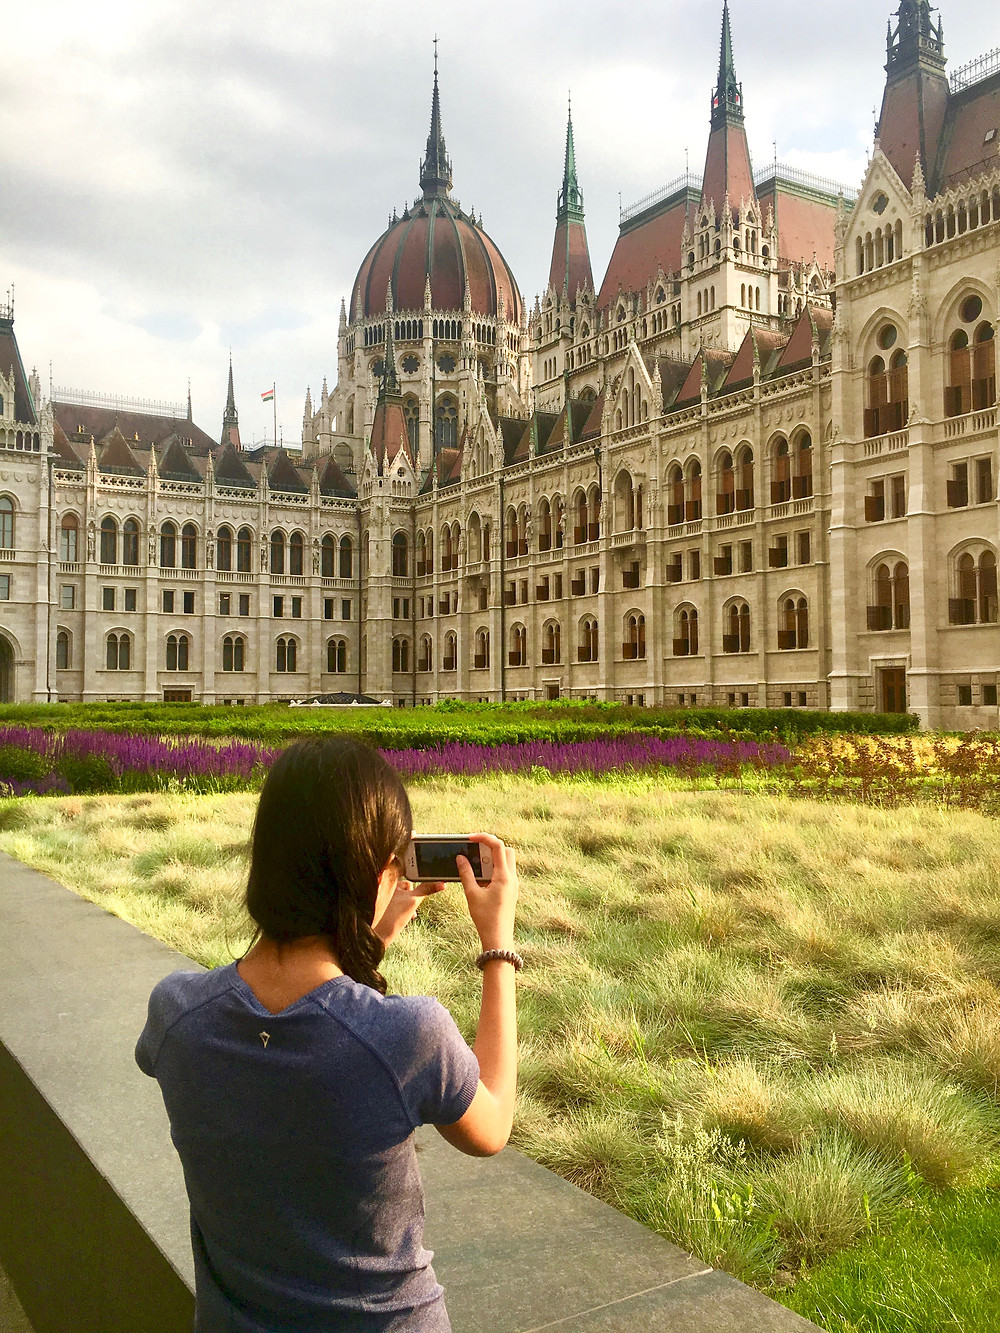 Eryn taking a photo of the Hungarian Parliament Building in front of its gardens under a cloudy sky in Budapest